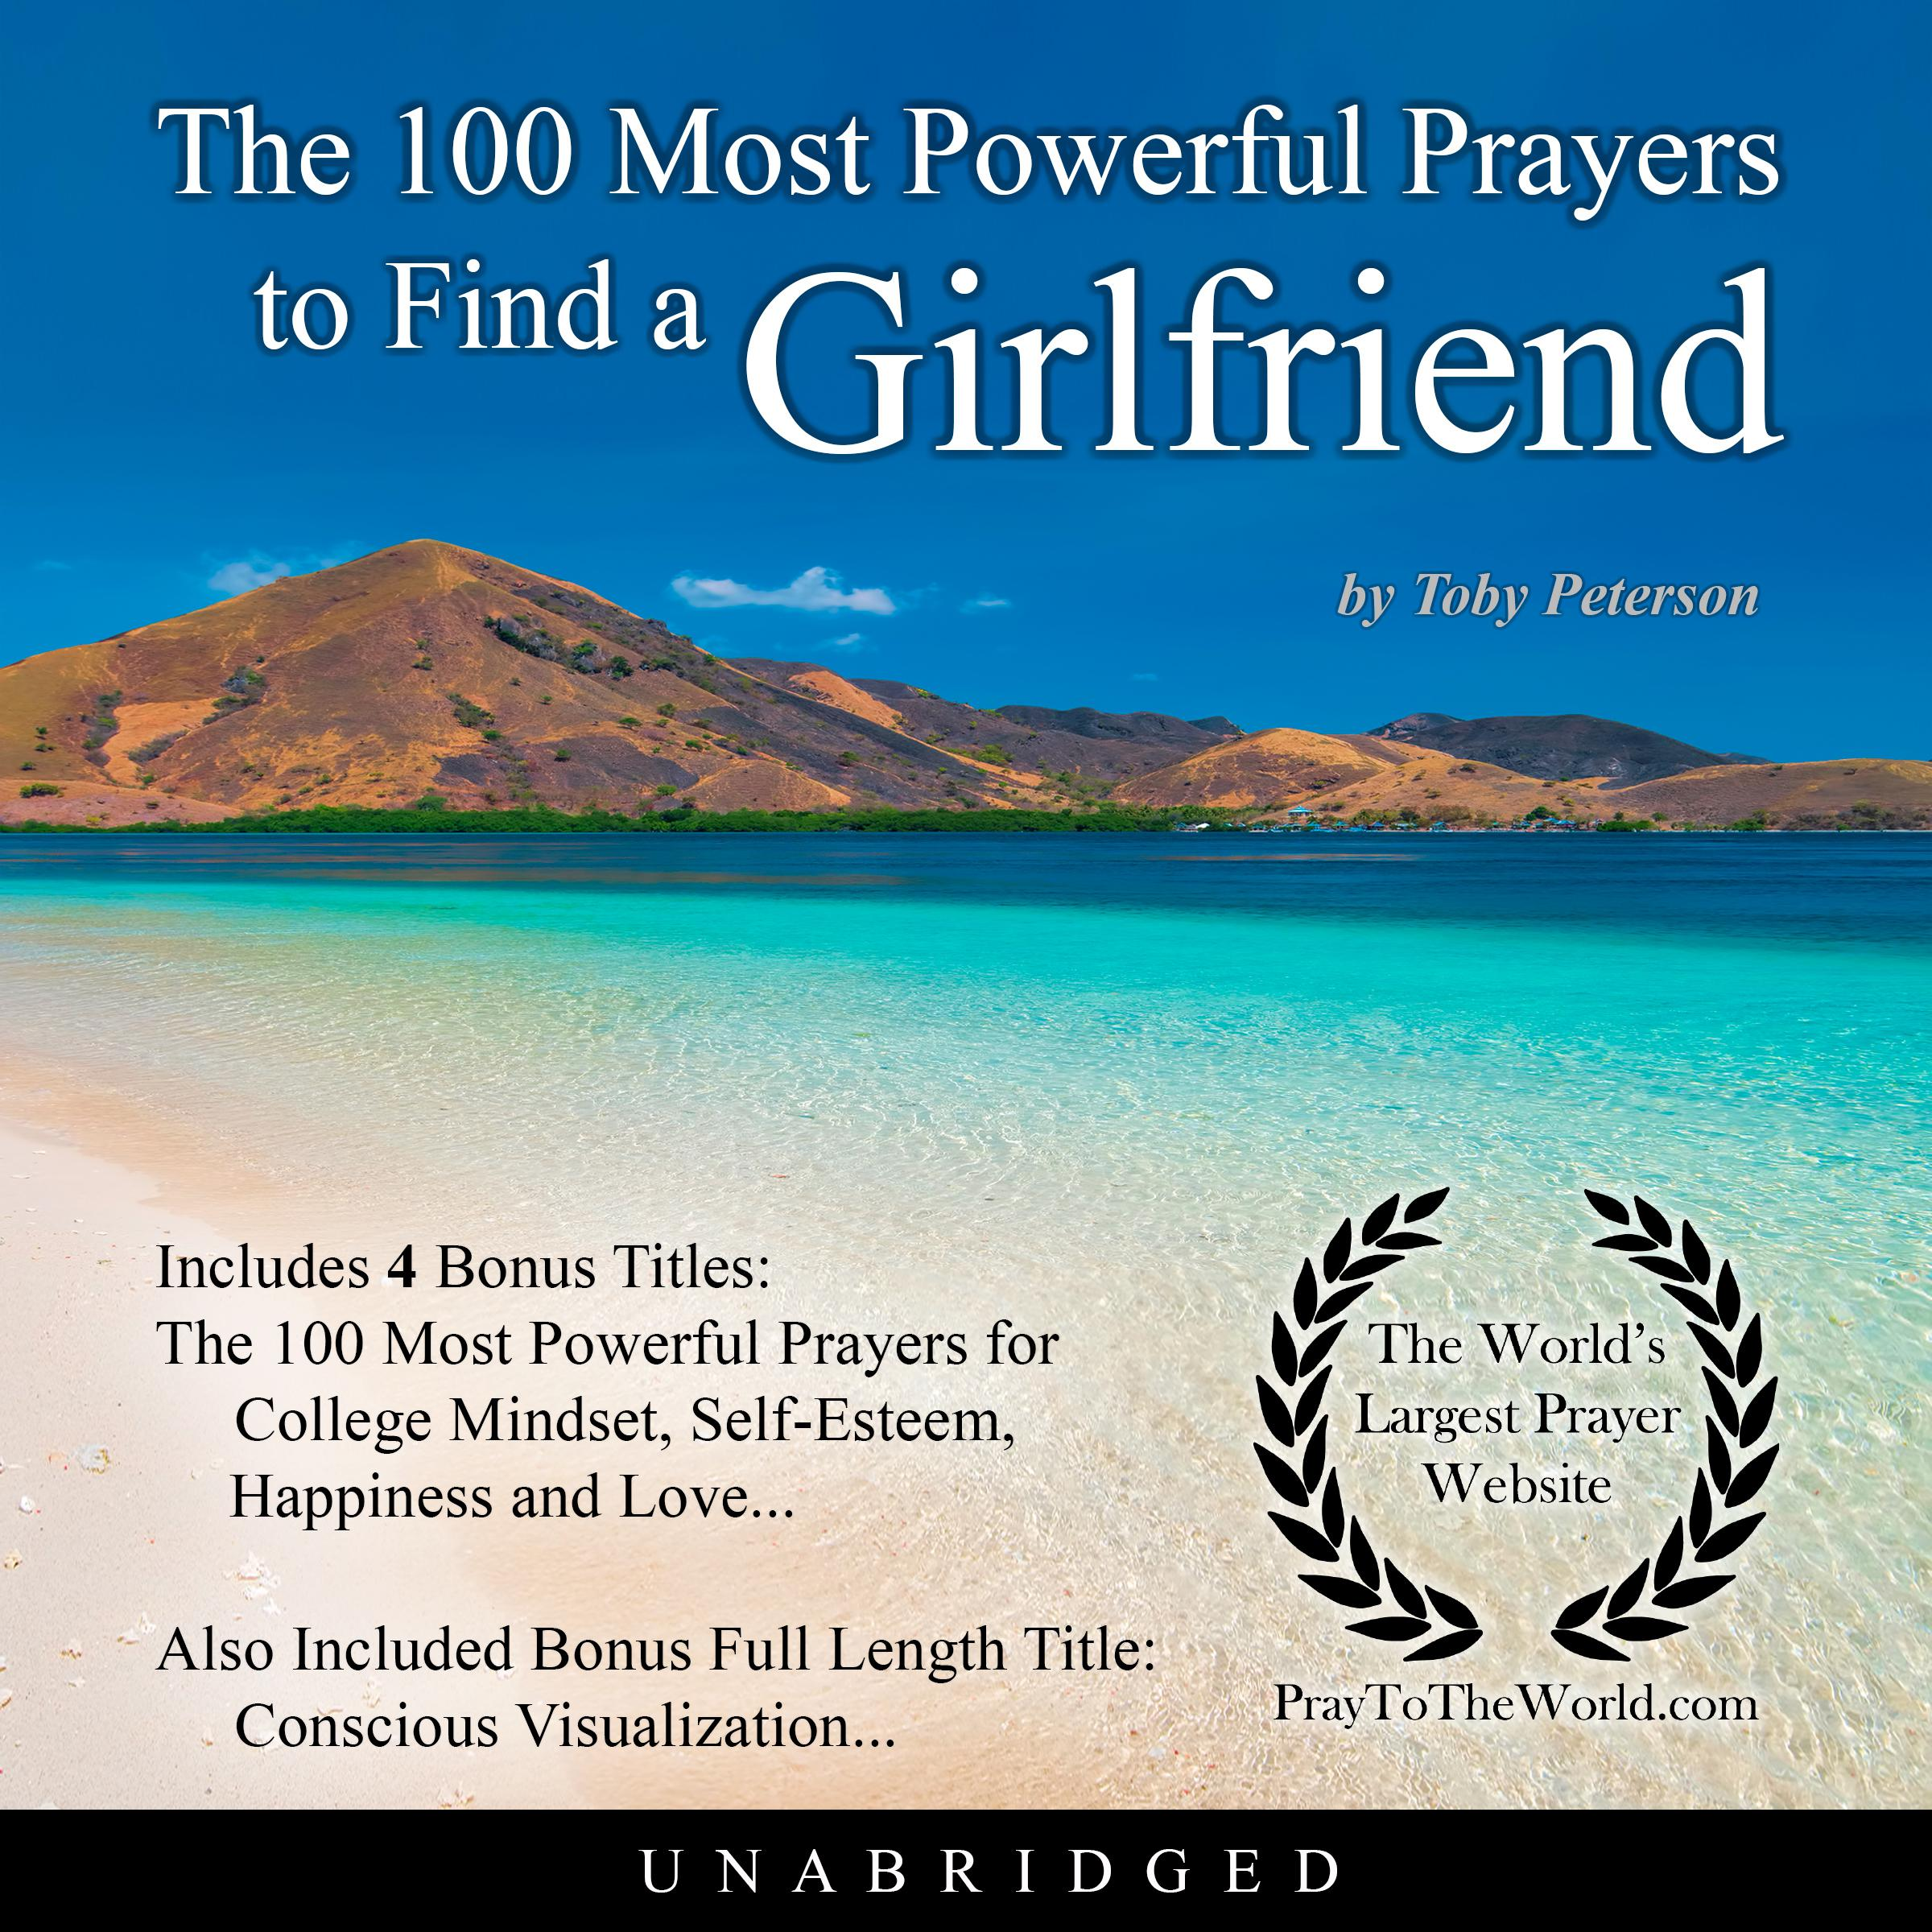 The 100 most powerful prayers to find a girlfriend audiobook extended audio sample the 100 most powerful prayers to find a girlfriend audiobook by toby peterson altavistaventures Gallery